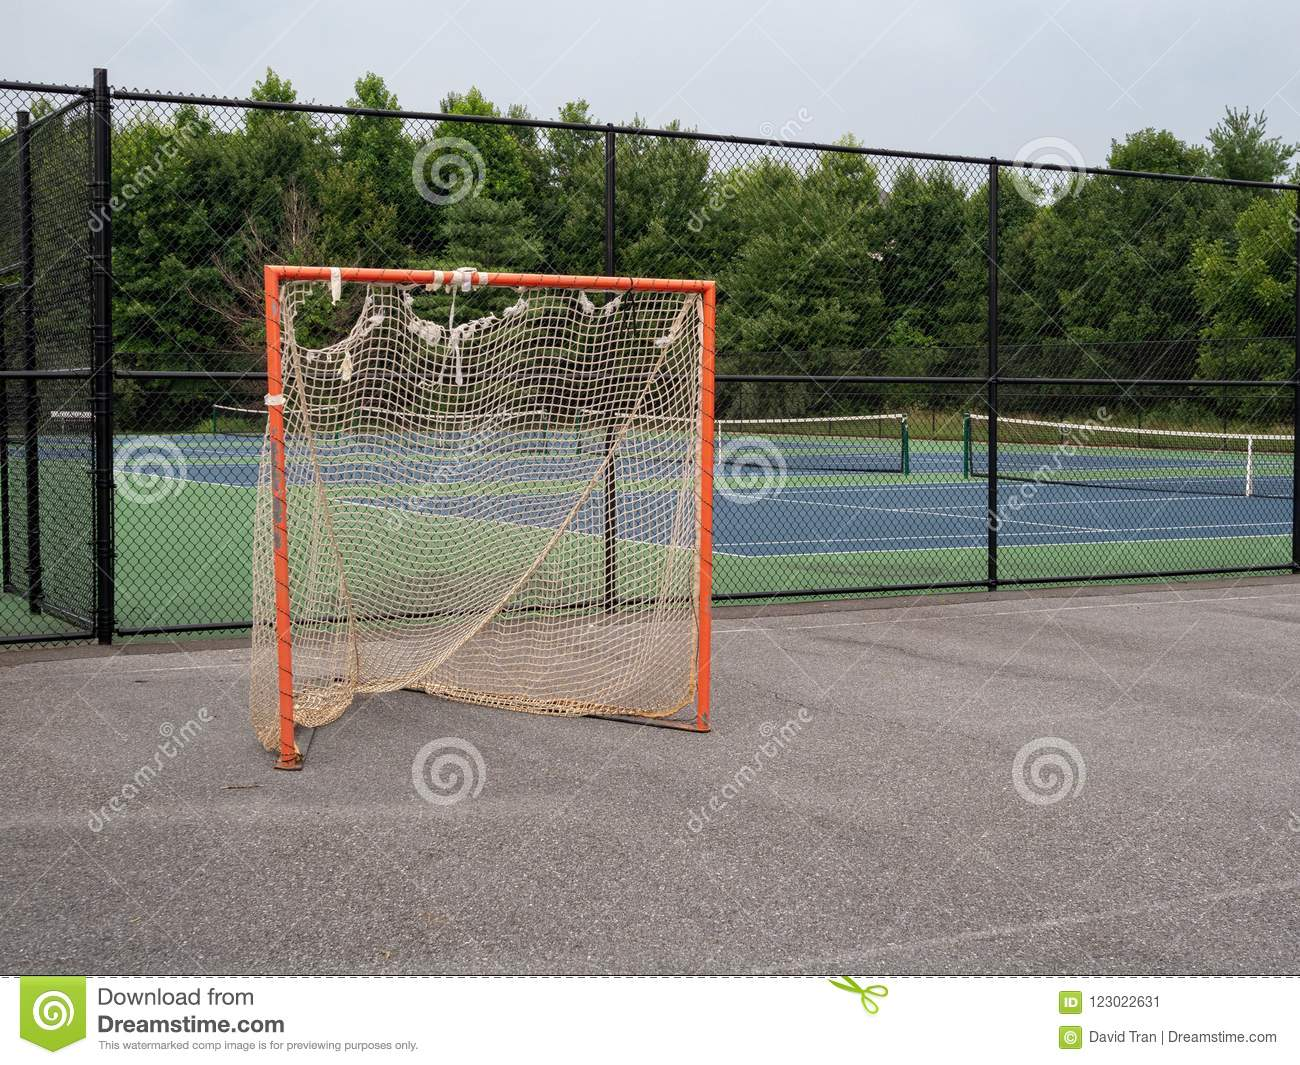 Offseason, beat up, rusted, ragged lacrosse goal sitting on asphalt court with nets tearing